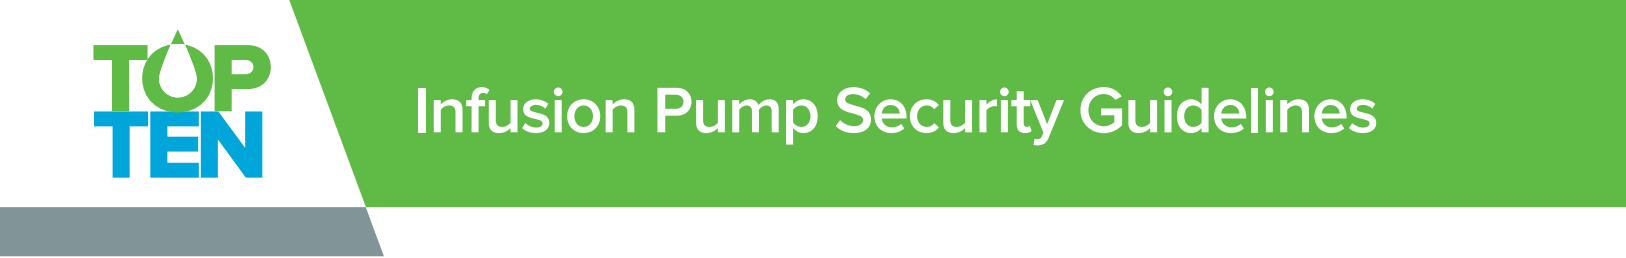 Infusion Pump Security Guidelines Ivenix